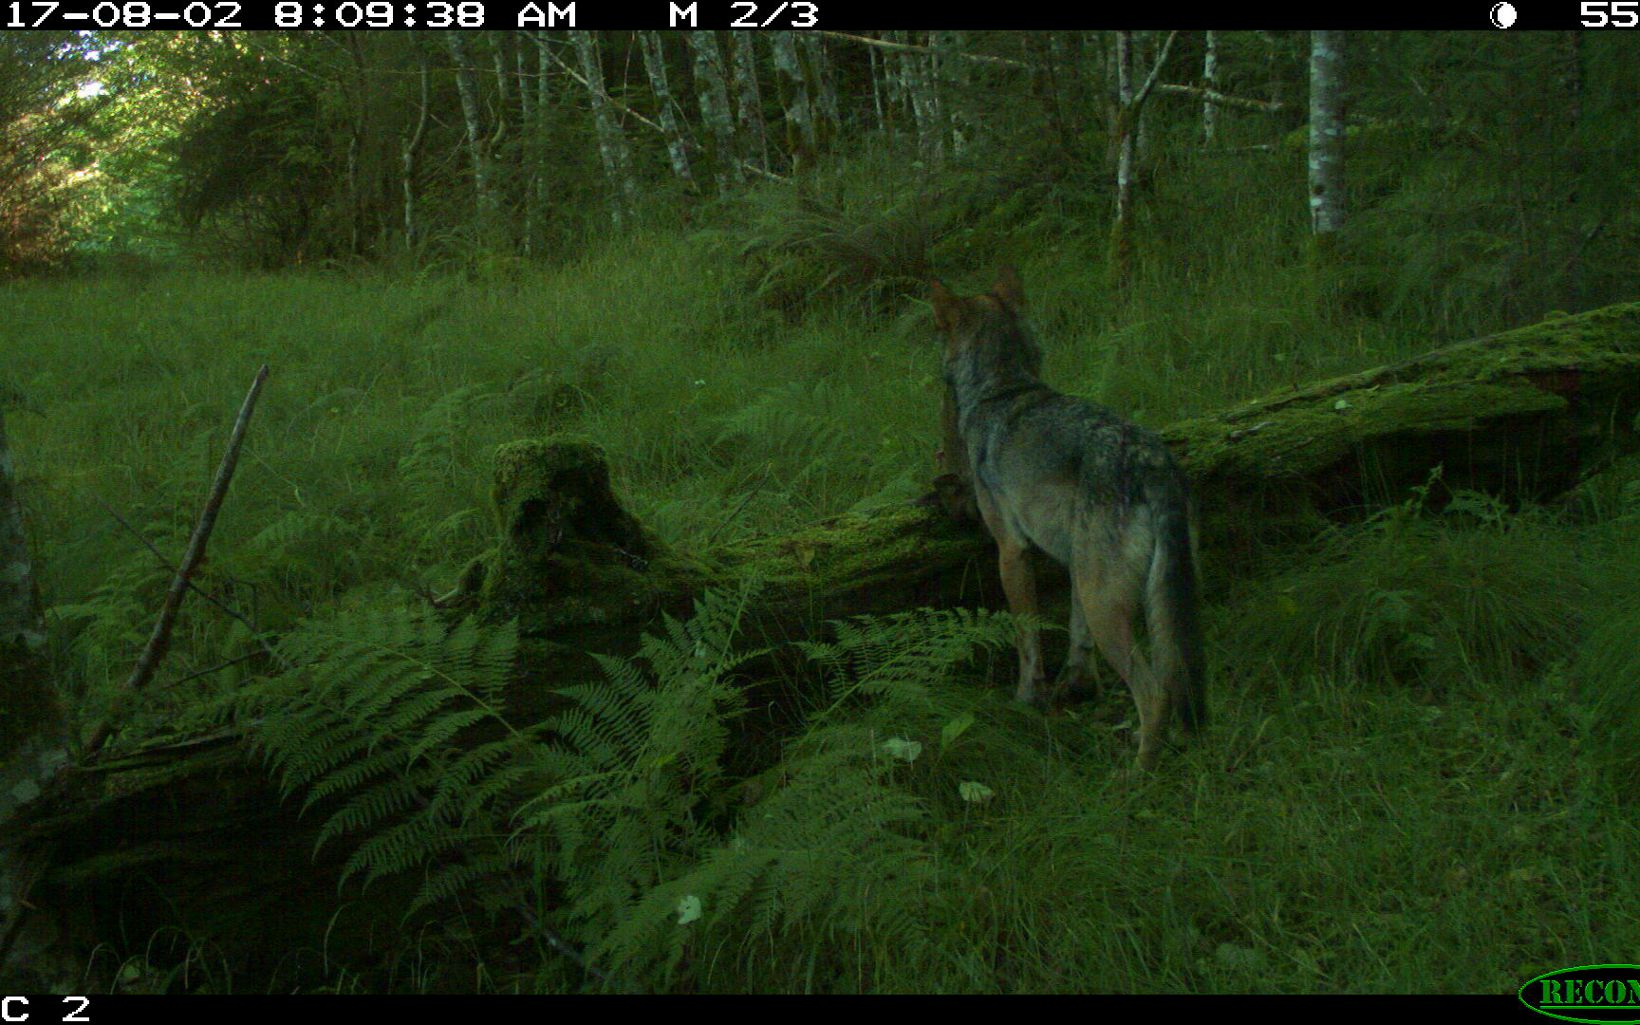 Wolf with prey captured on a trail camera on Prince of Wales Island in Alaska.